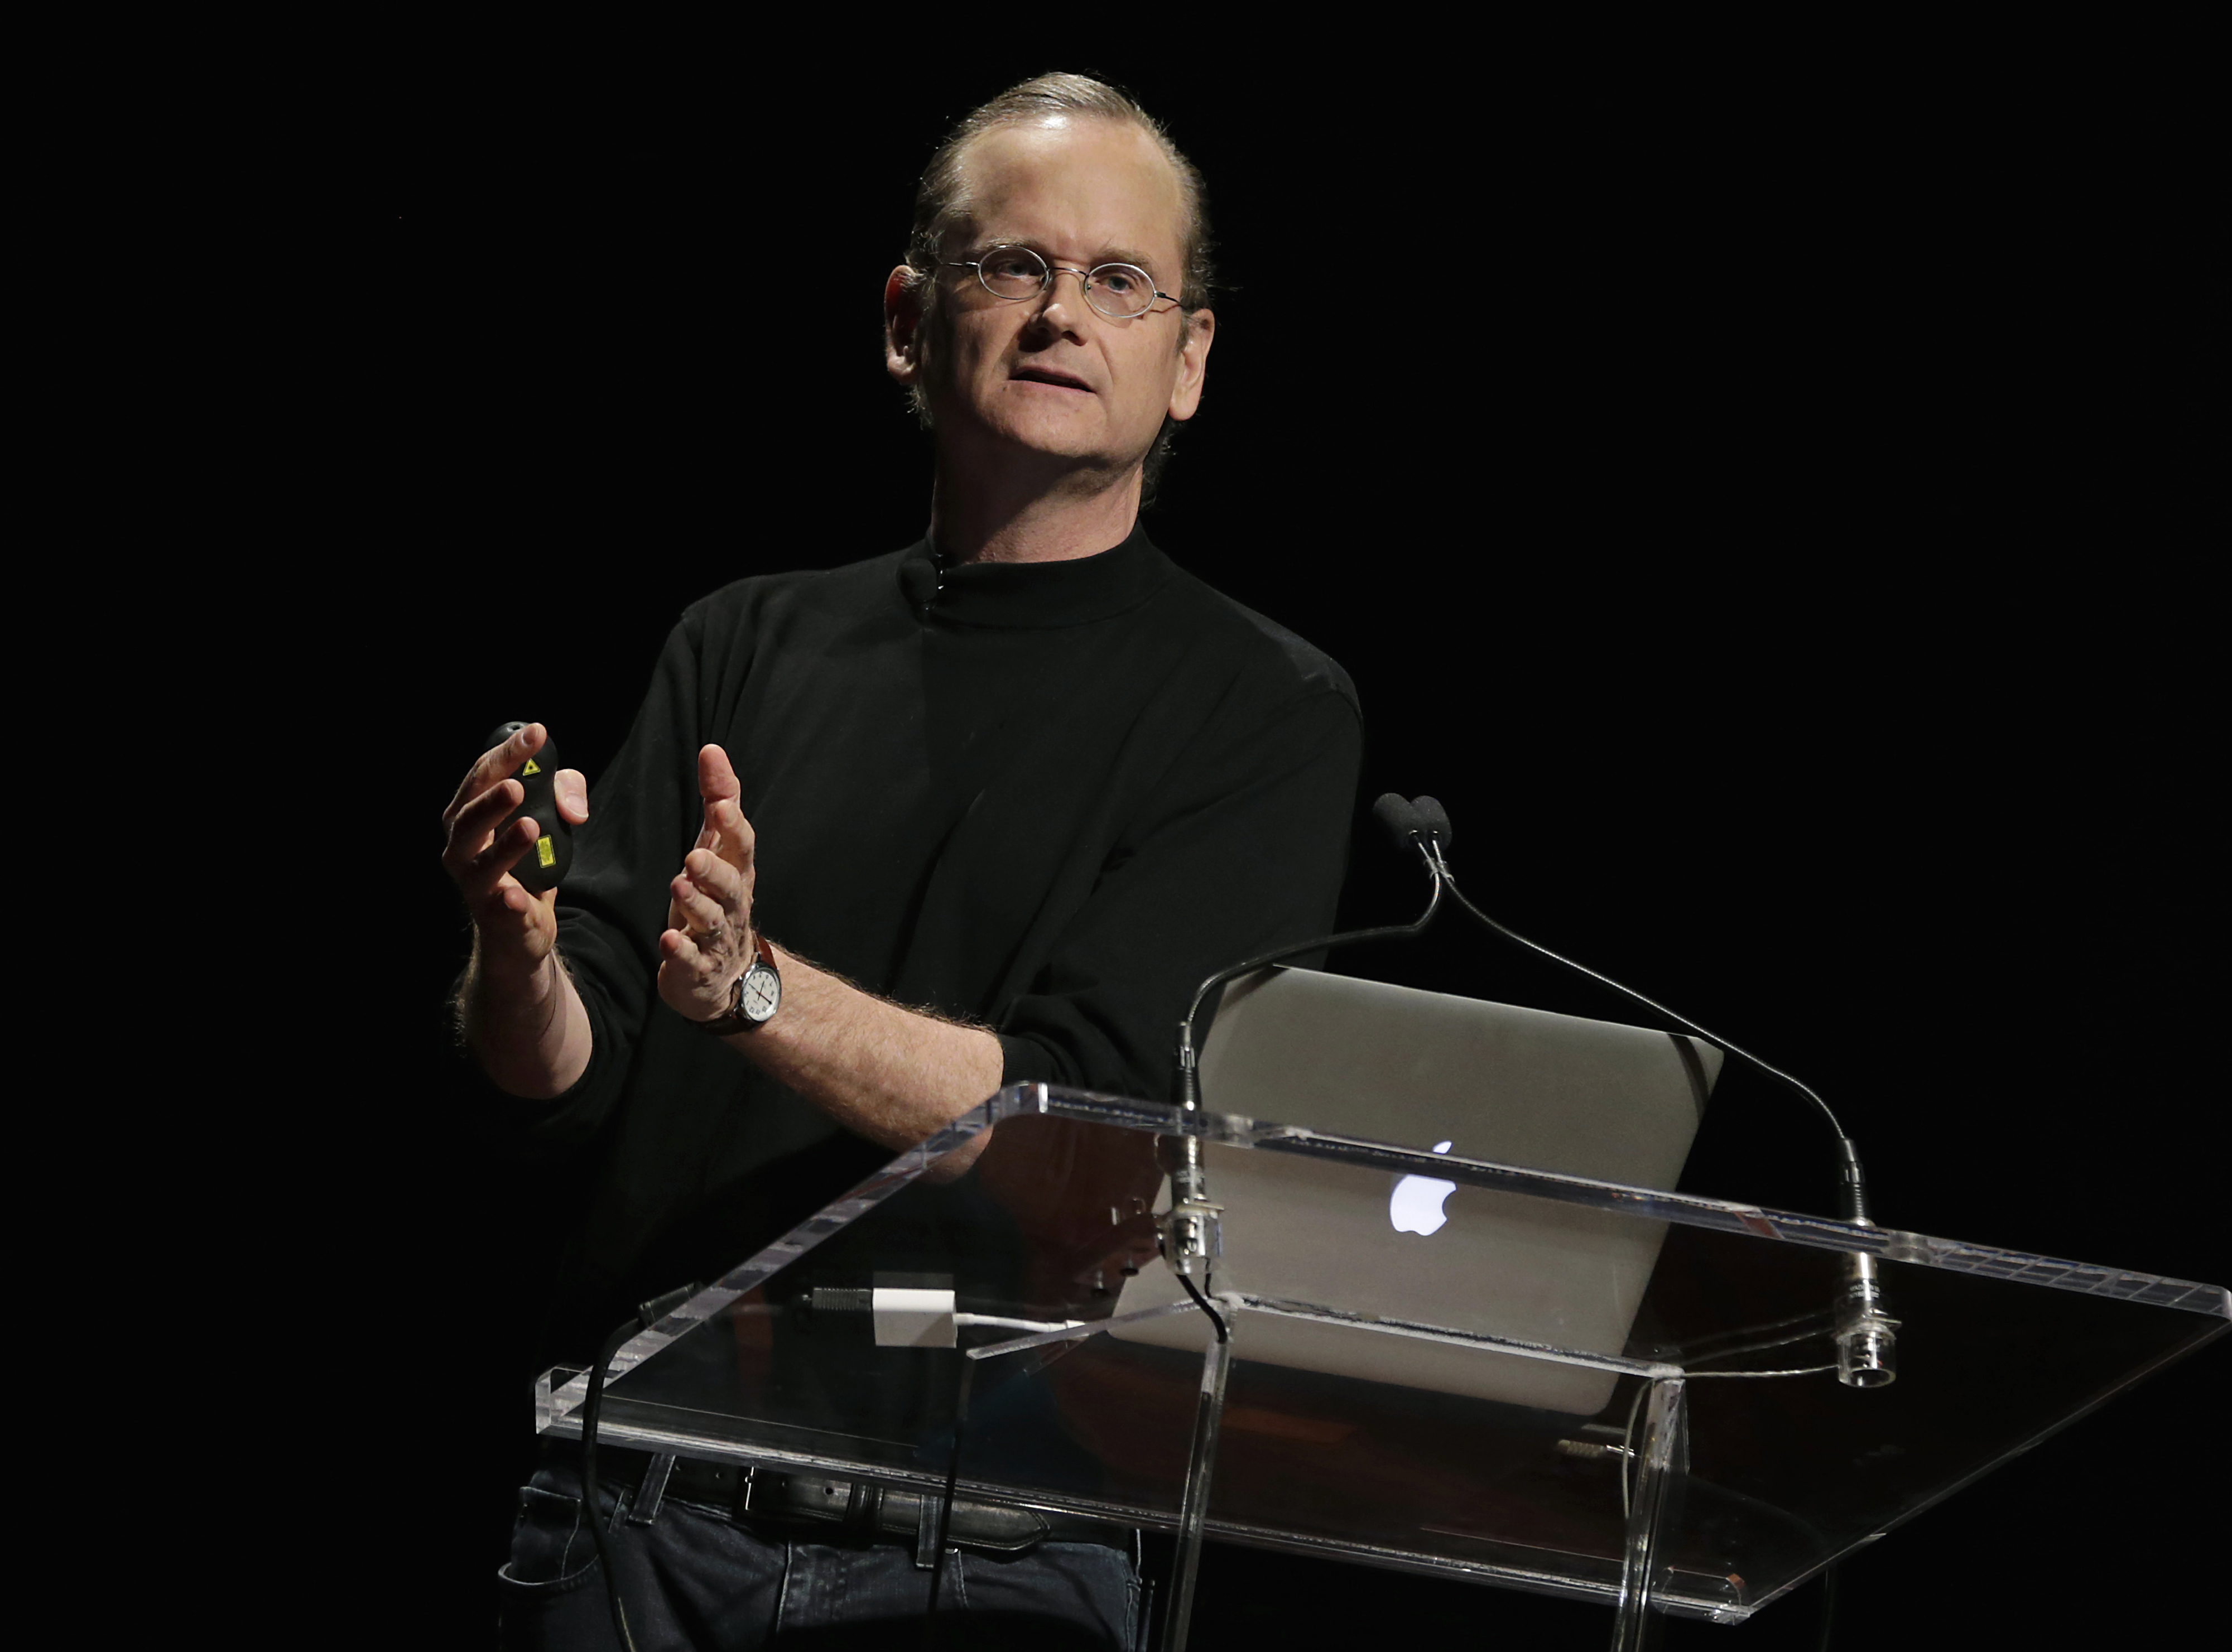 Lawrence Lessig, professor at Harvard Law School, speaks during the 2014 WIRED Business Conference (BizCon) in New York, U.S., on Tuesday, May 13, 2014.